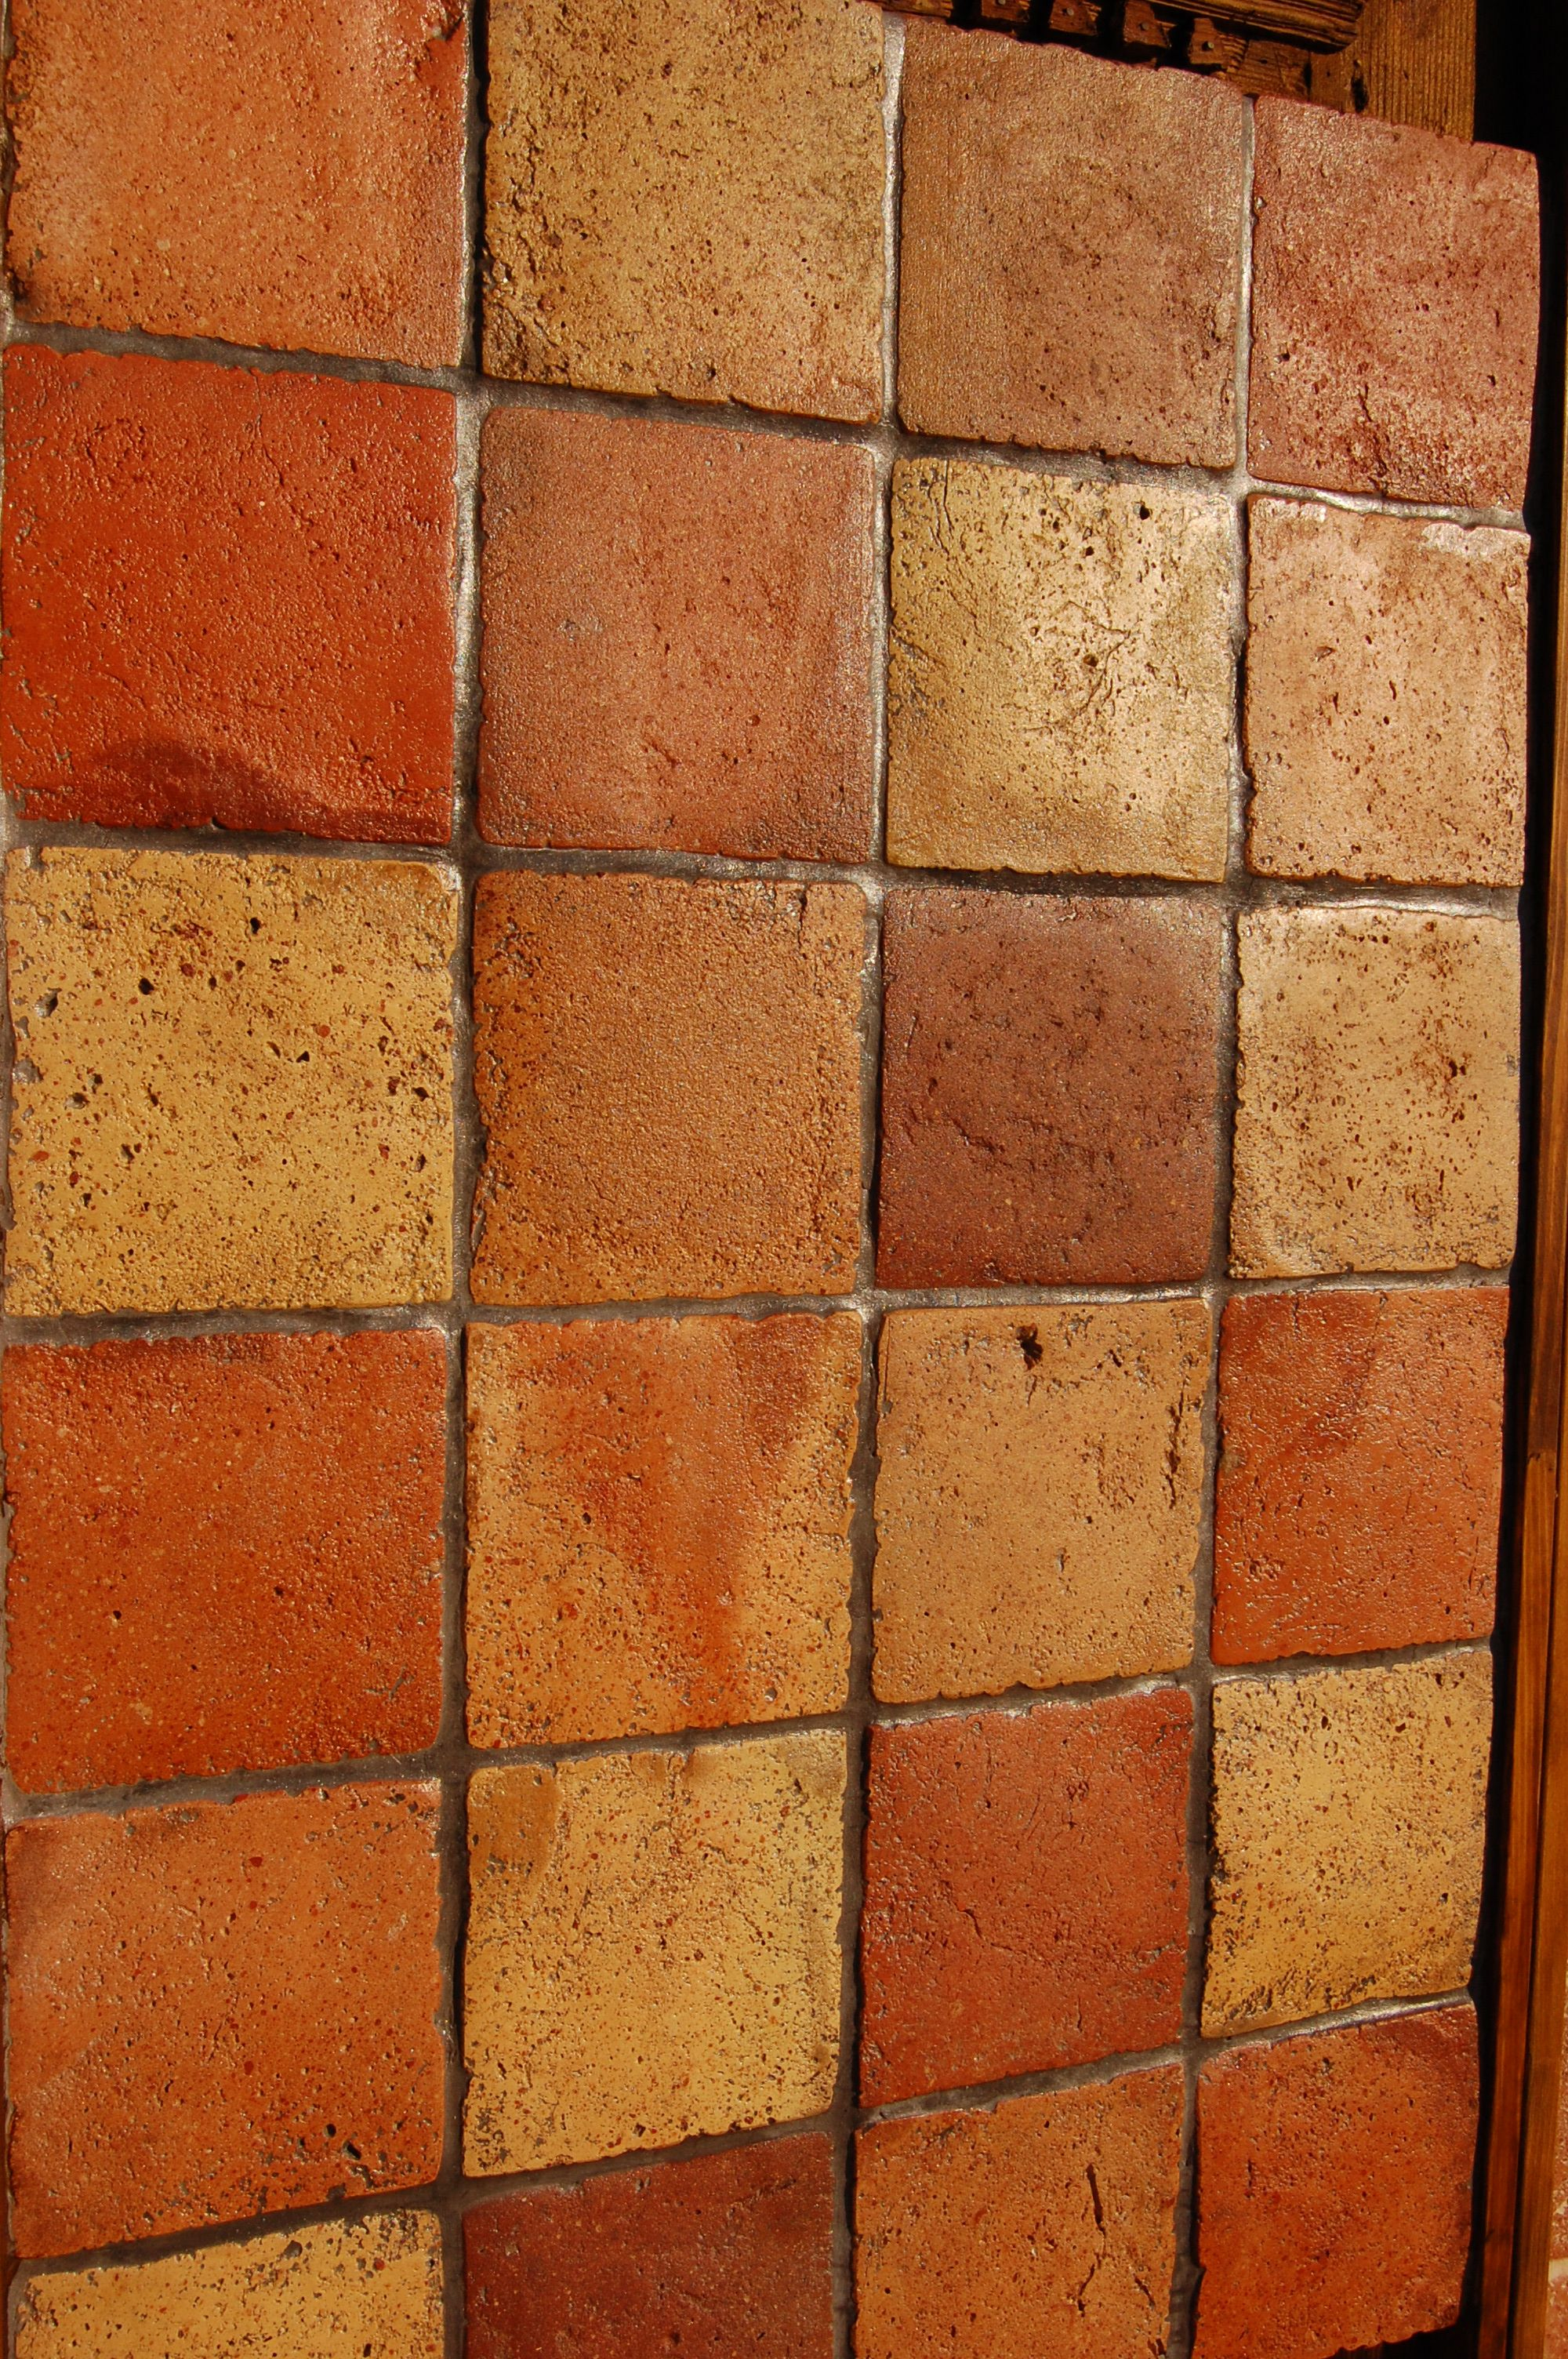 Looking For Tile Flooring Design Ideas Check These Out Www Terracotta Flooring Com Terracotta Tiles Terracotta Floor Kitchen Floor Tile